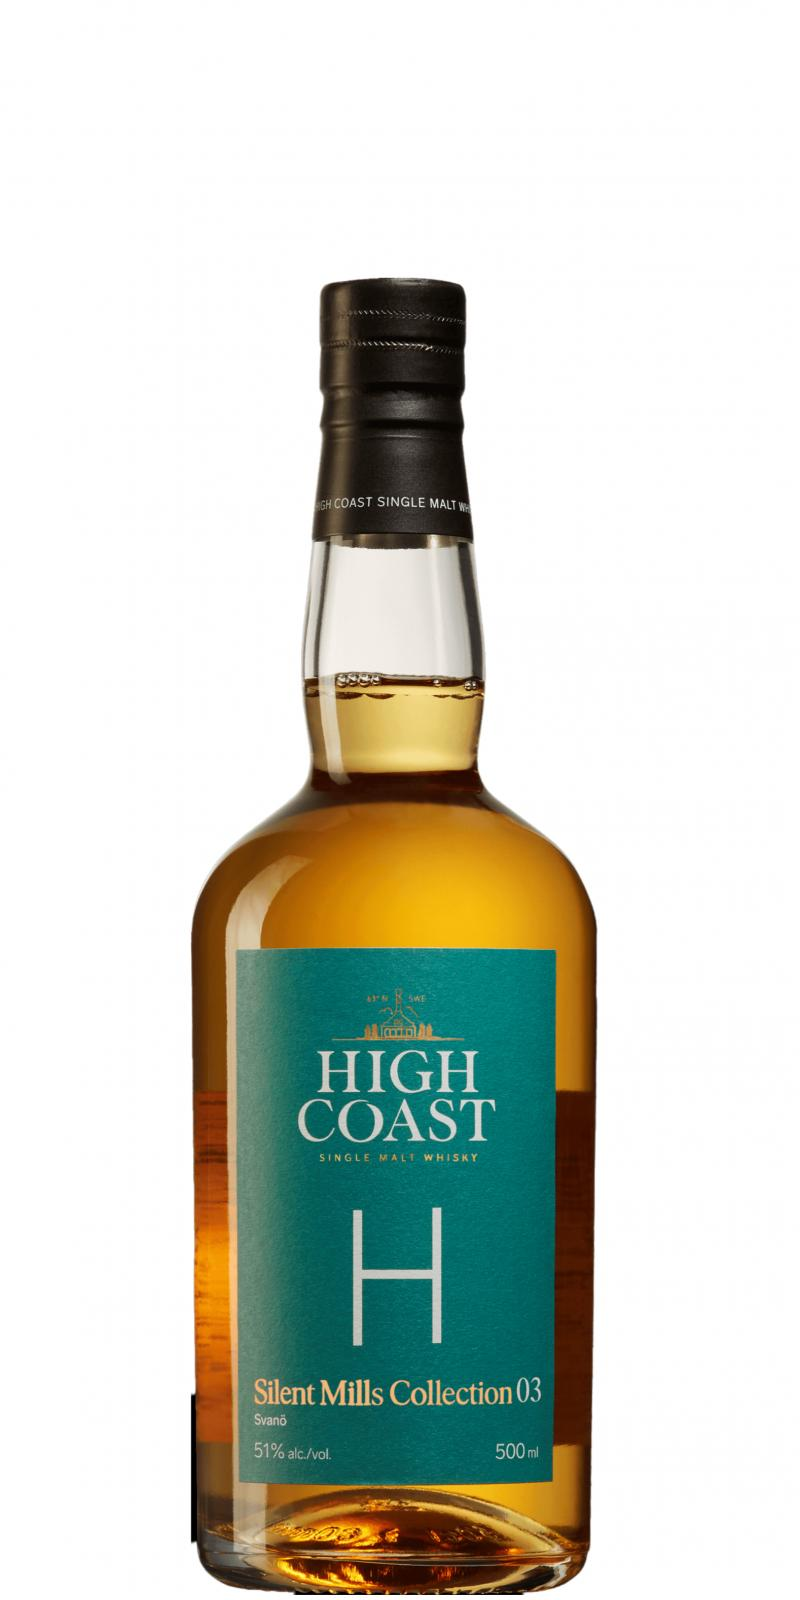 High Coast Silent Mills Collection 03